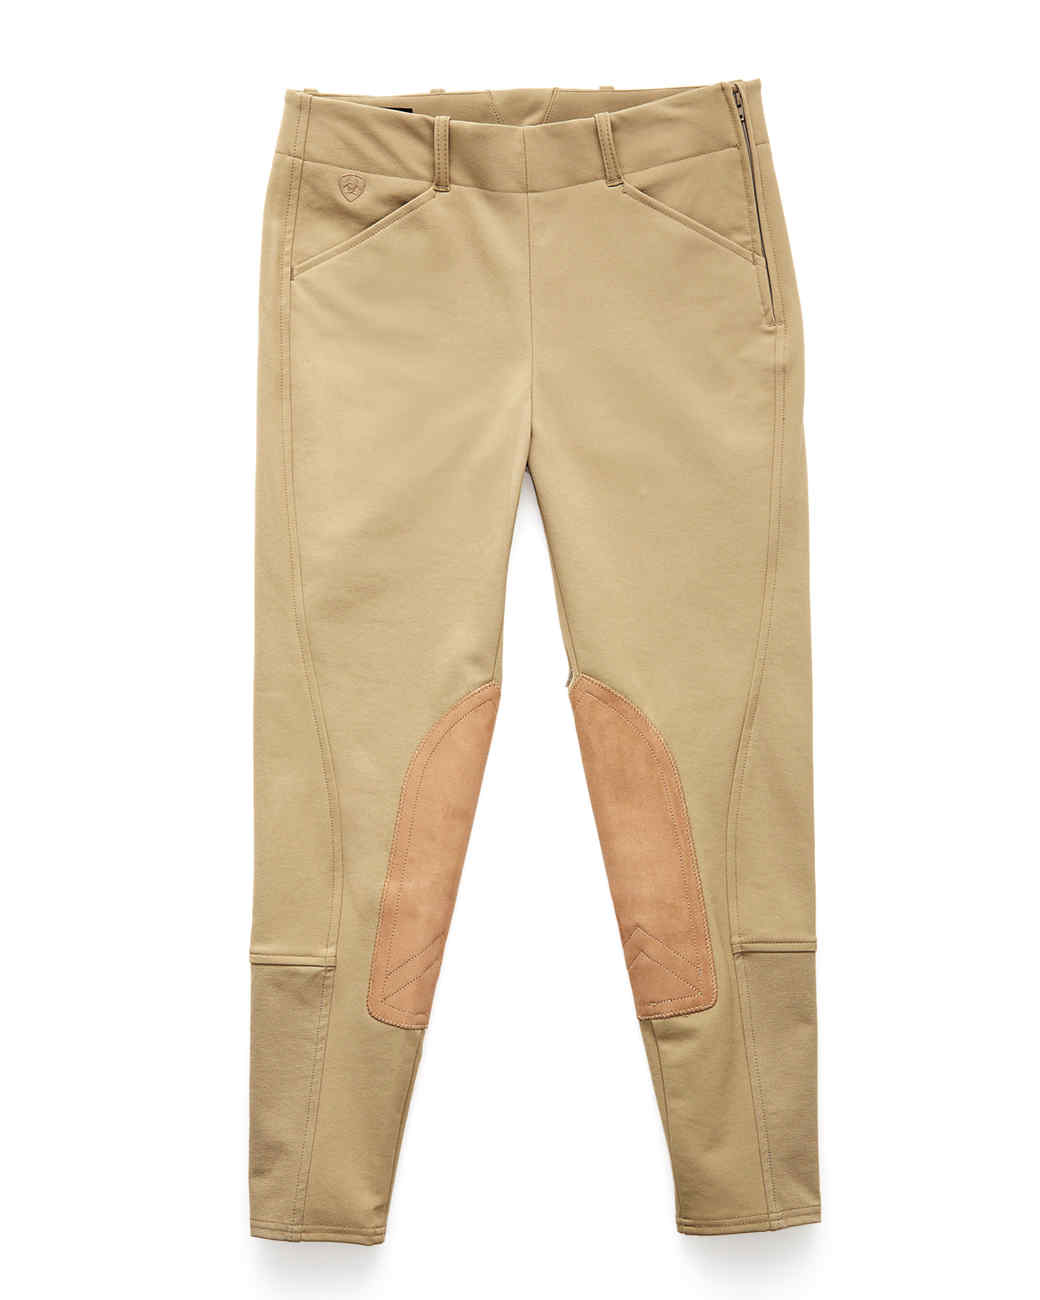 area-riding-pants-056-mld109147.jpg